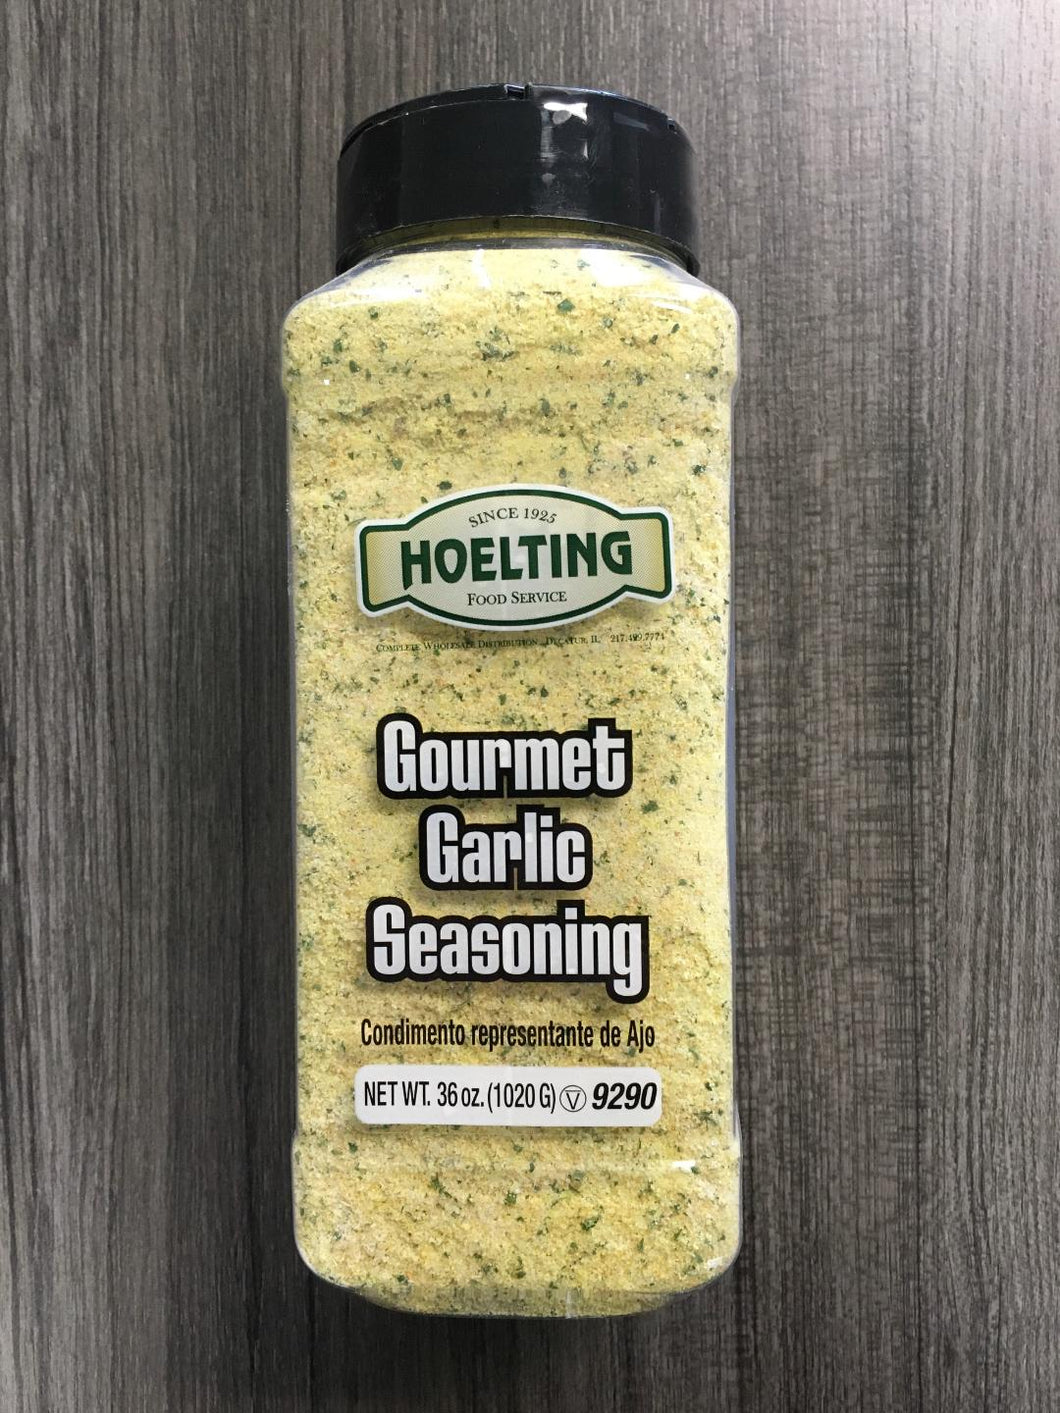 SPICE-GOURMET GARLIC SEASONING (36 OZ.)